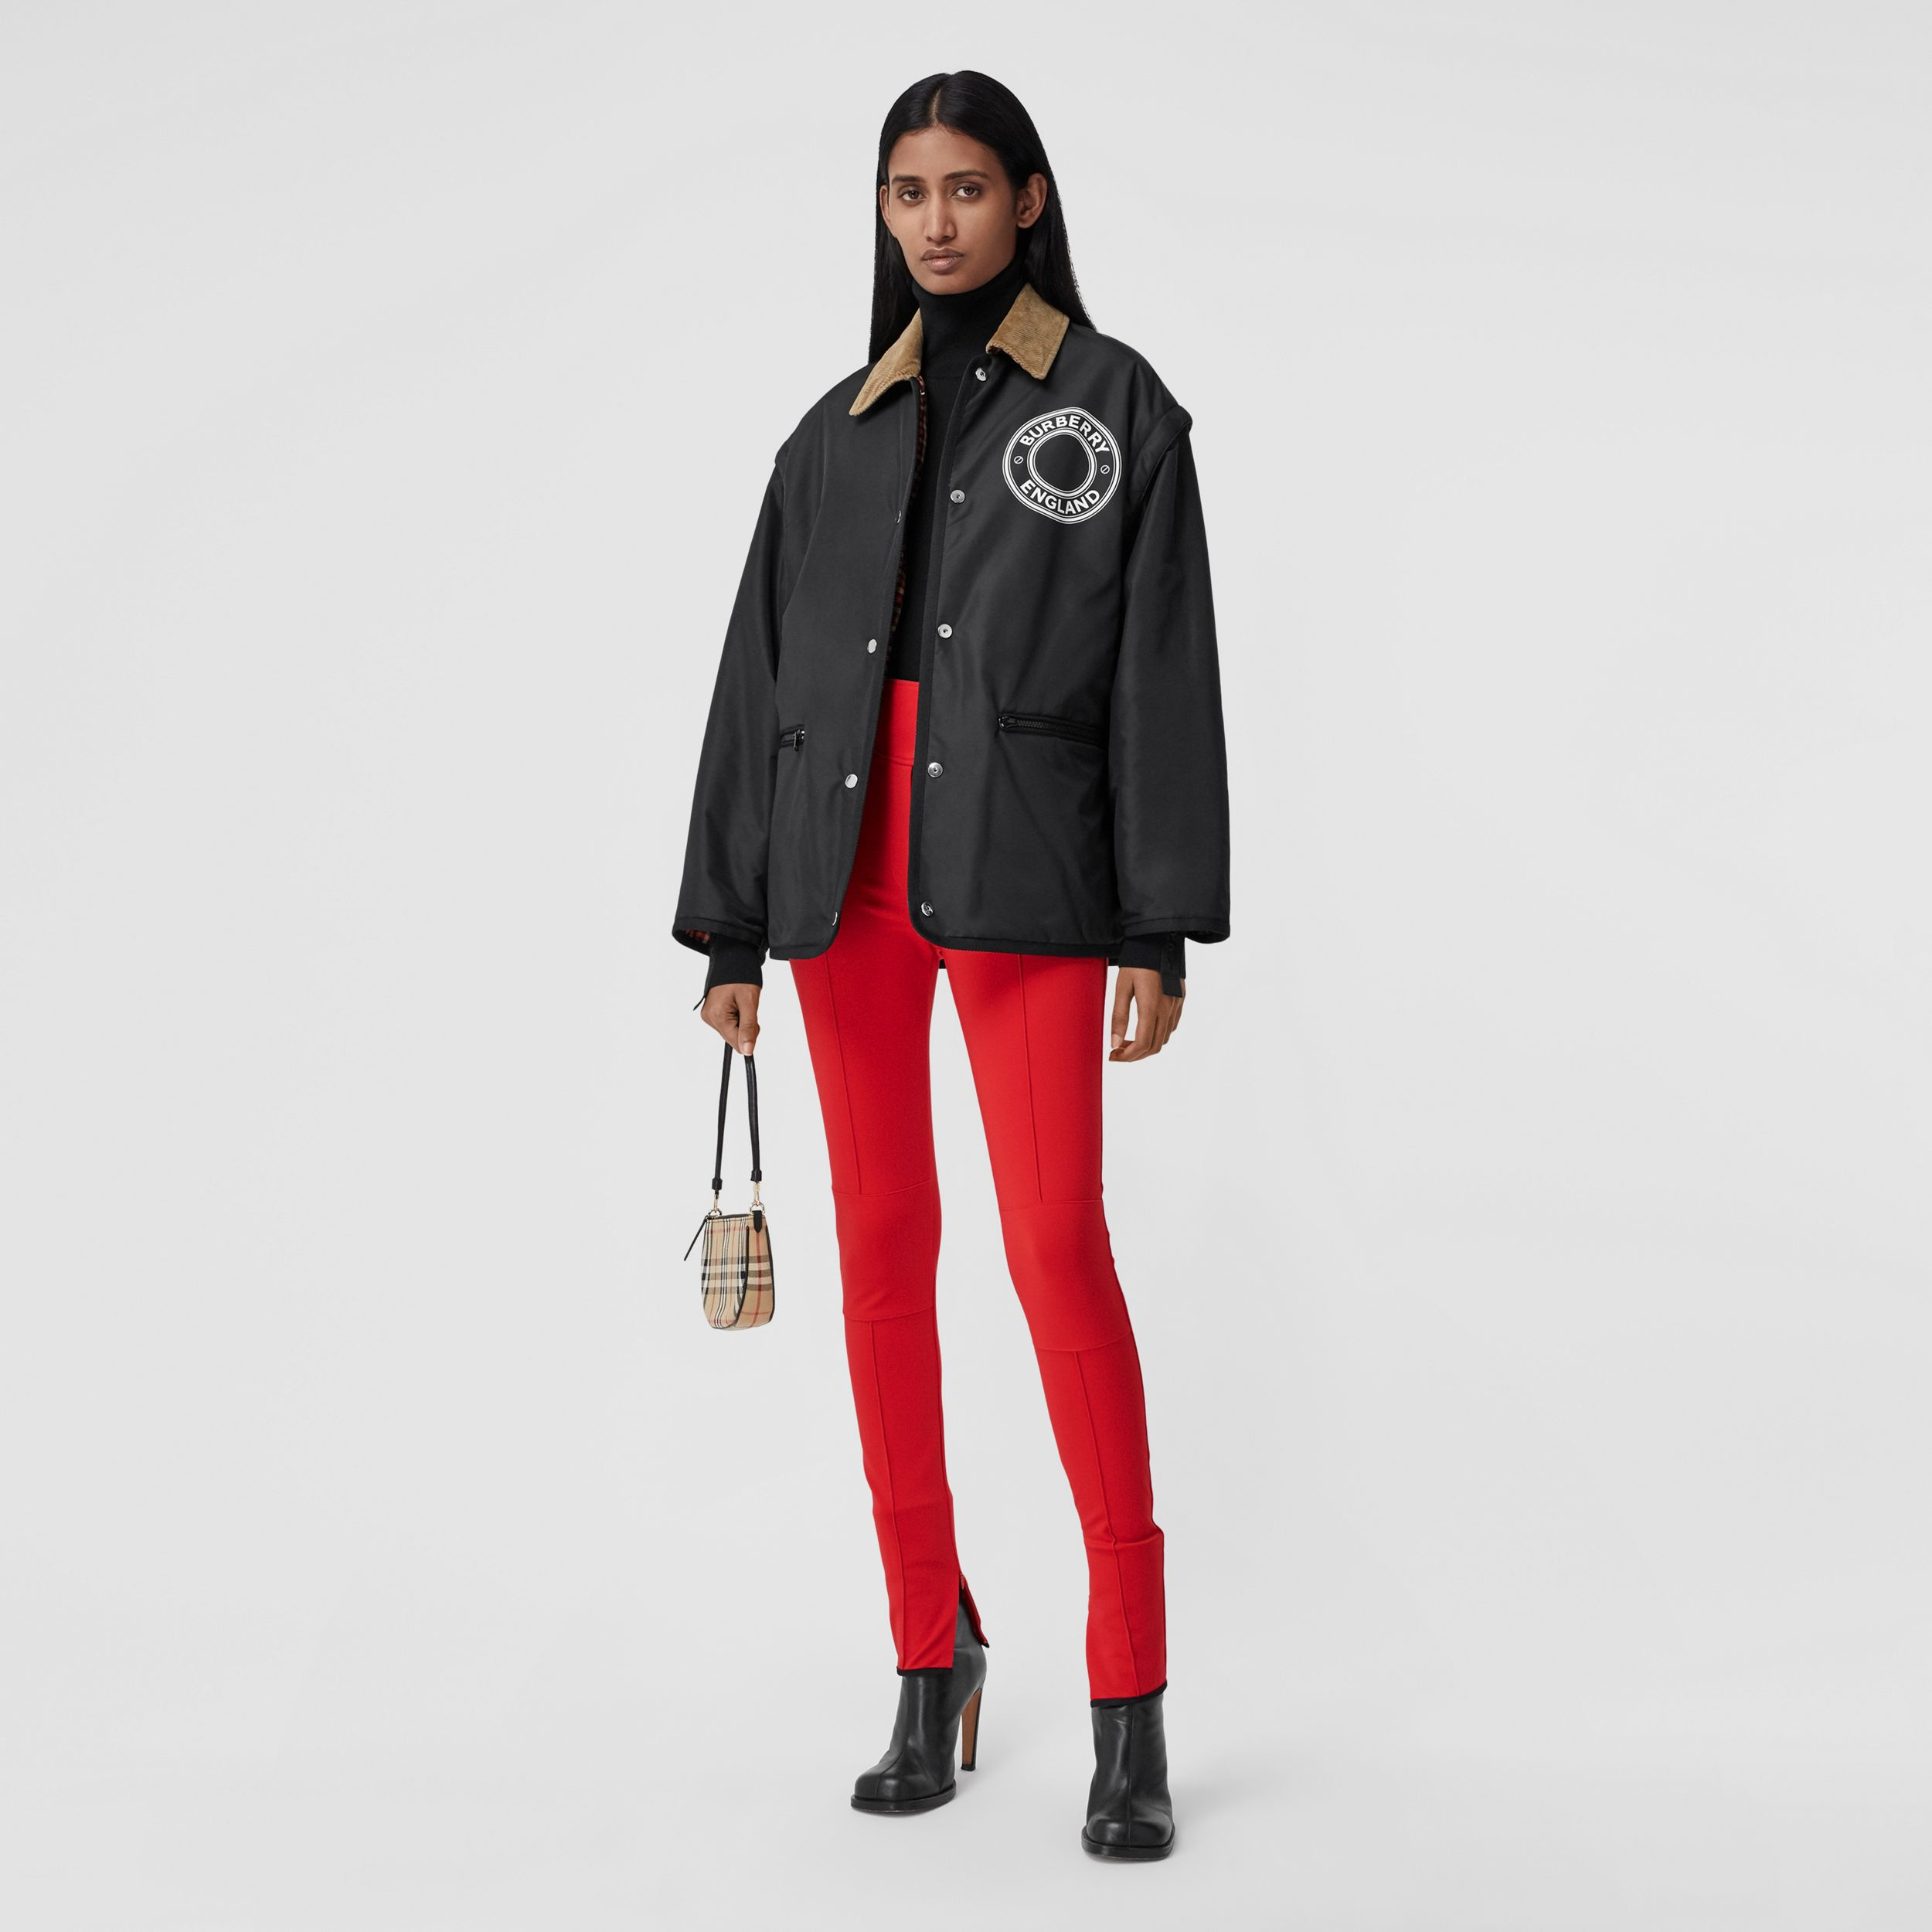 Stretch Crepe Jersey Jodhpurs in Bright Red - Women | Burberry - 1